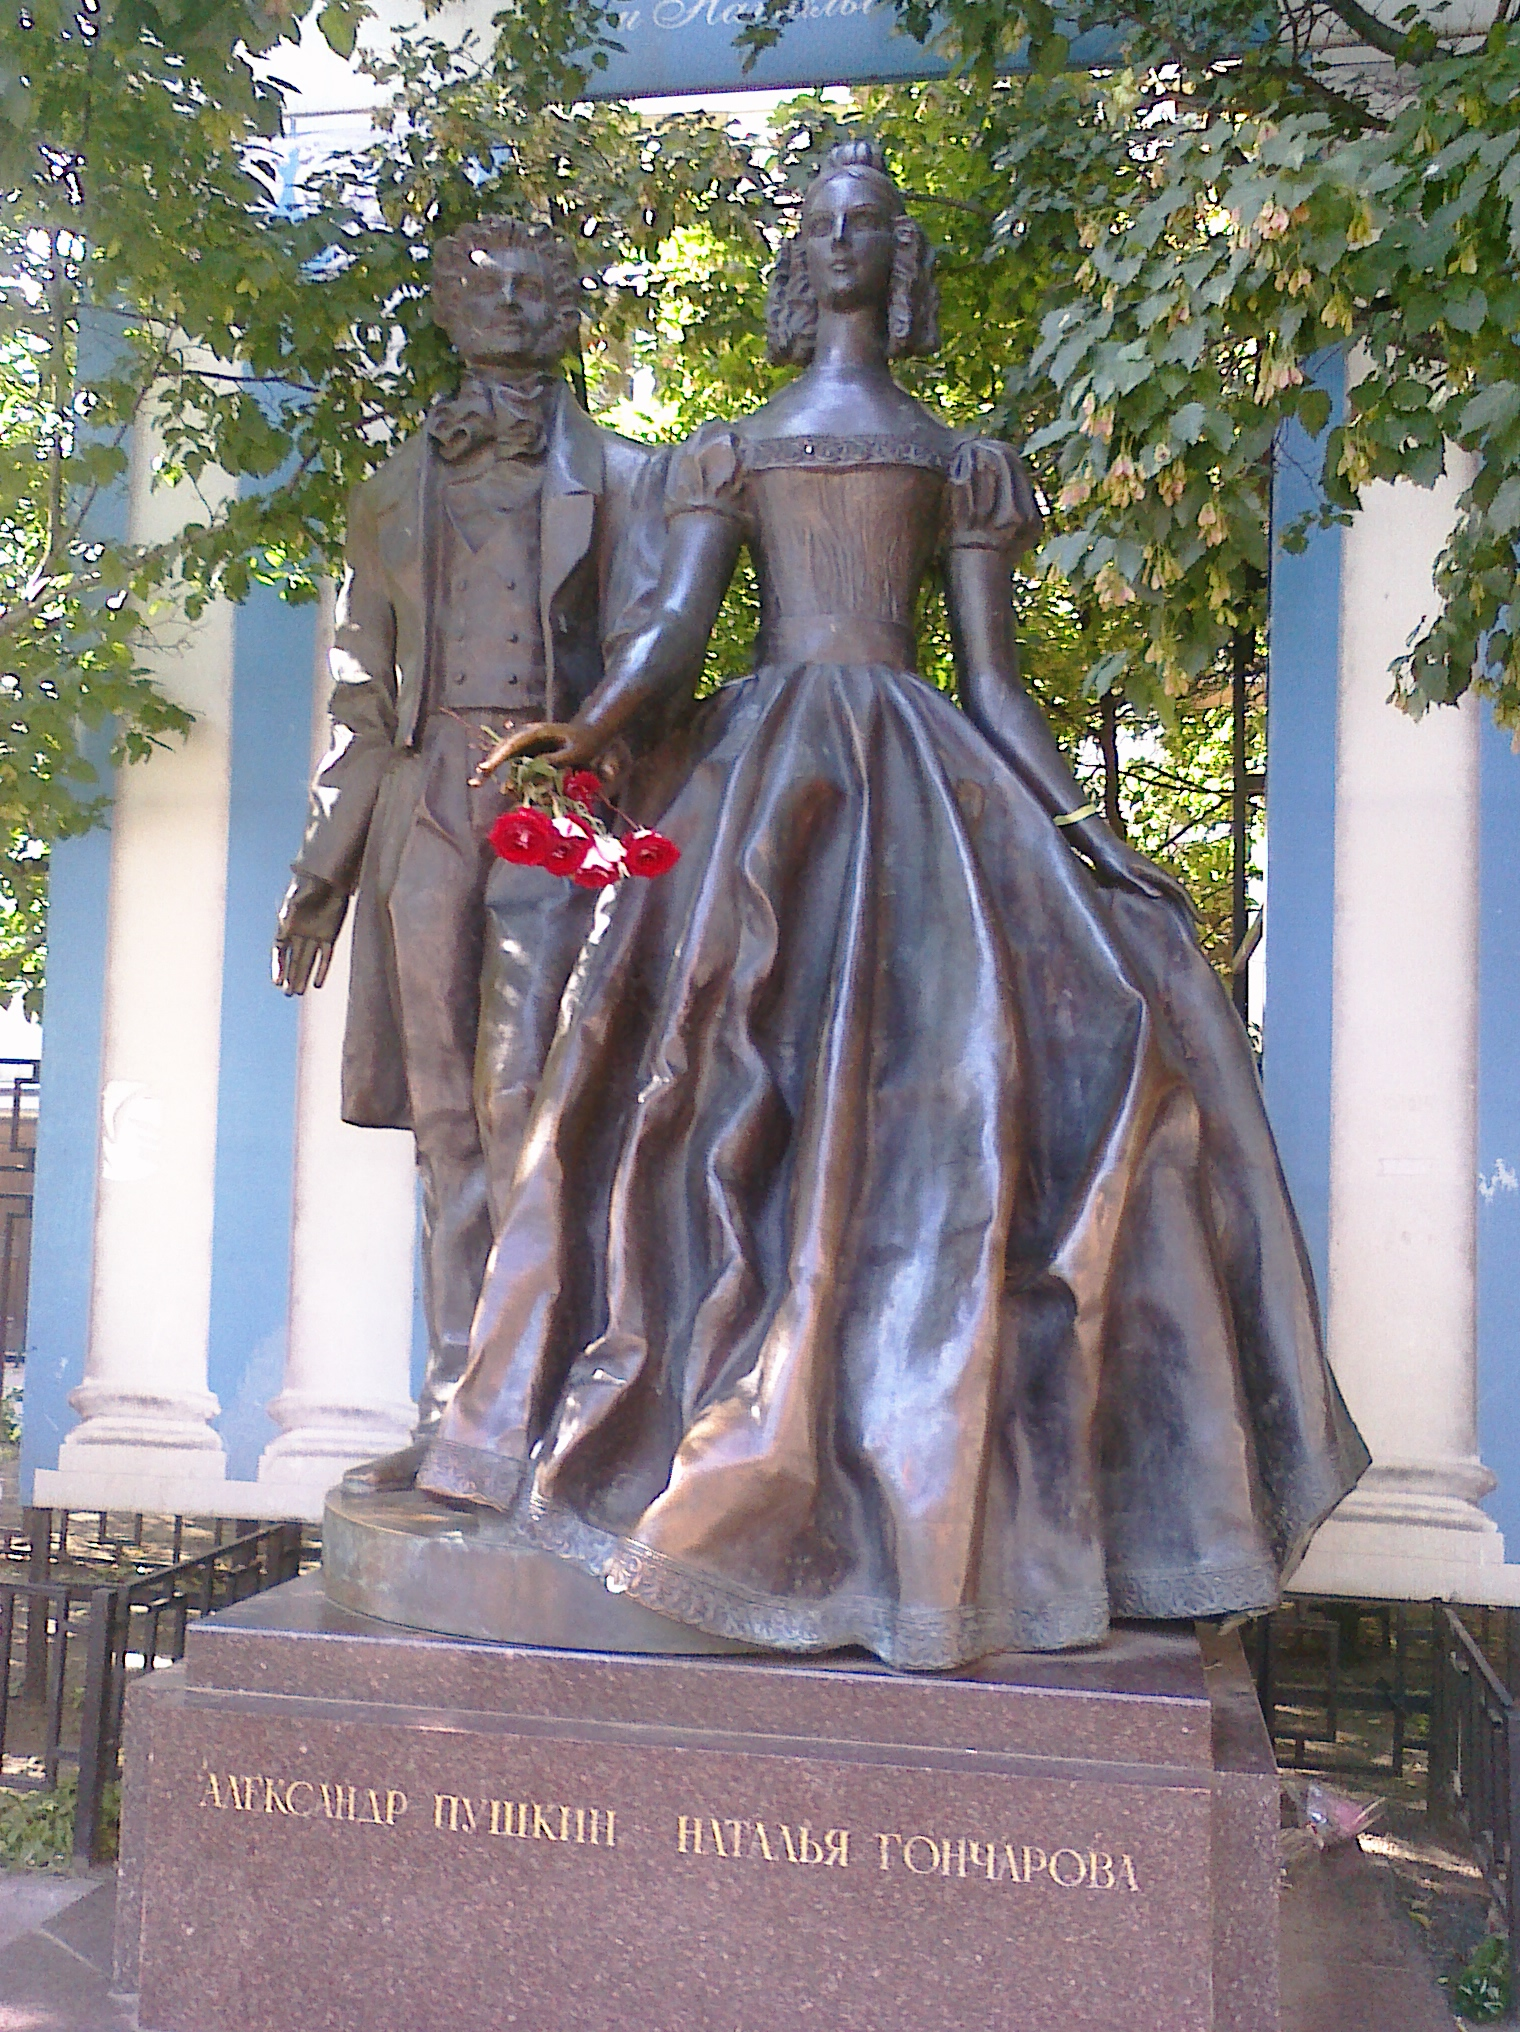 Pushkin and wife statute in Moscow CIMG0509 (2).jpg